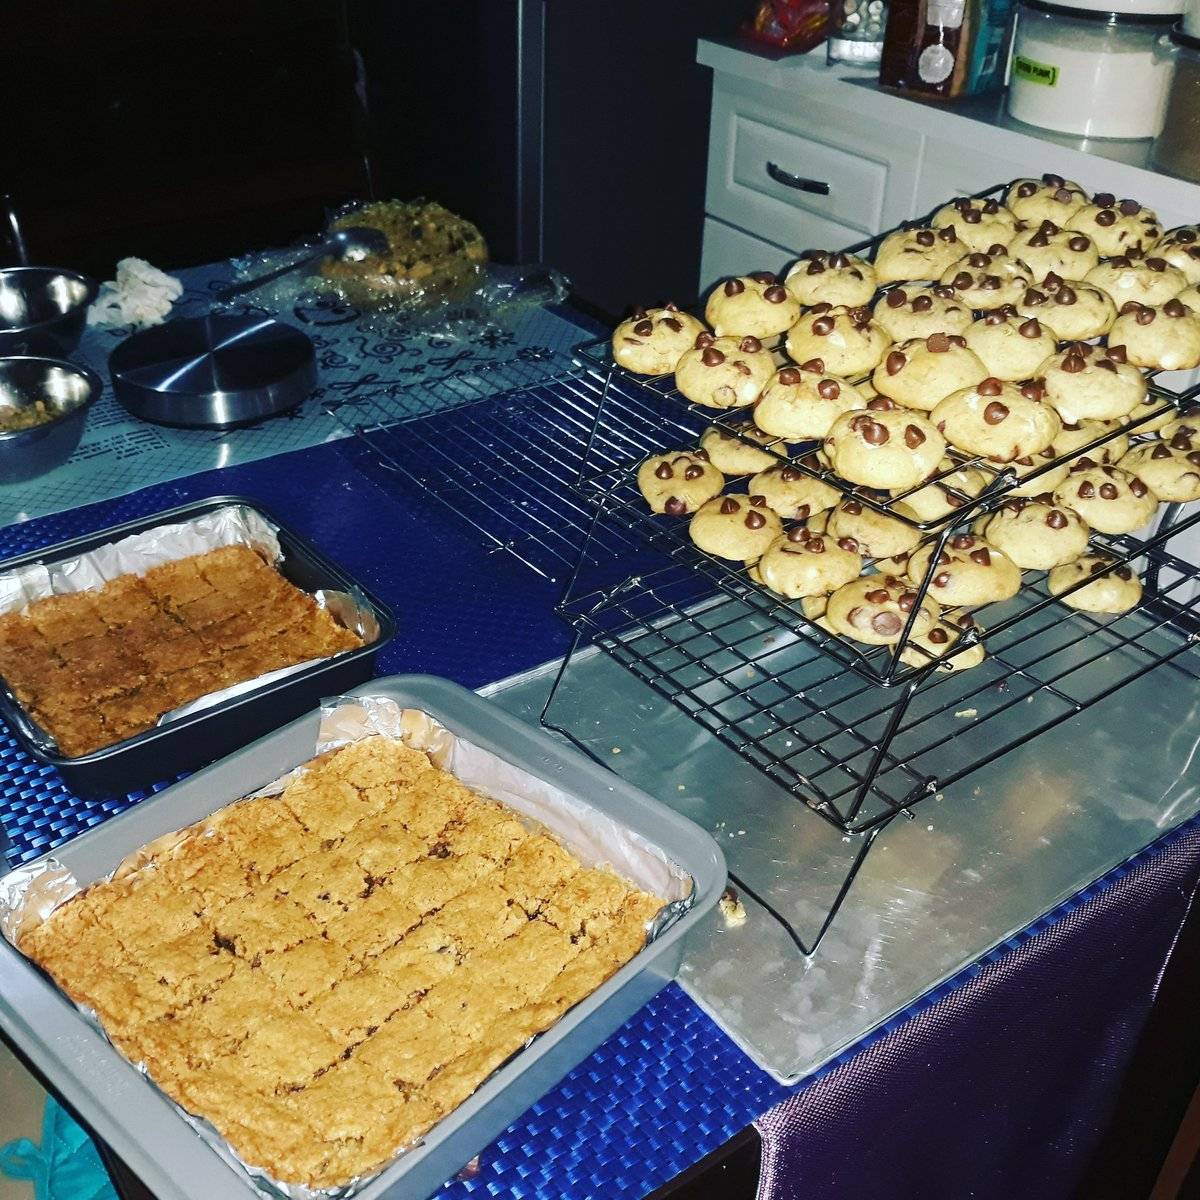 My Moms Cookie Empire #Yummy #Tasty https://t.co/aaT1js6snY